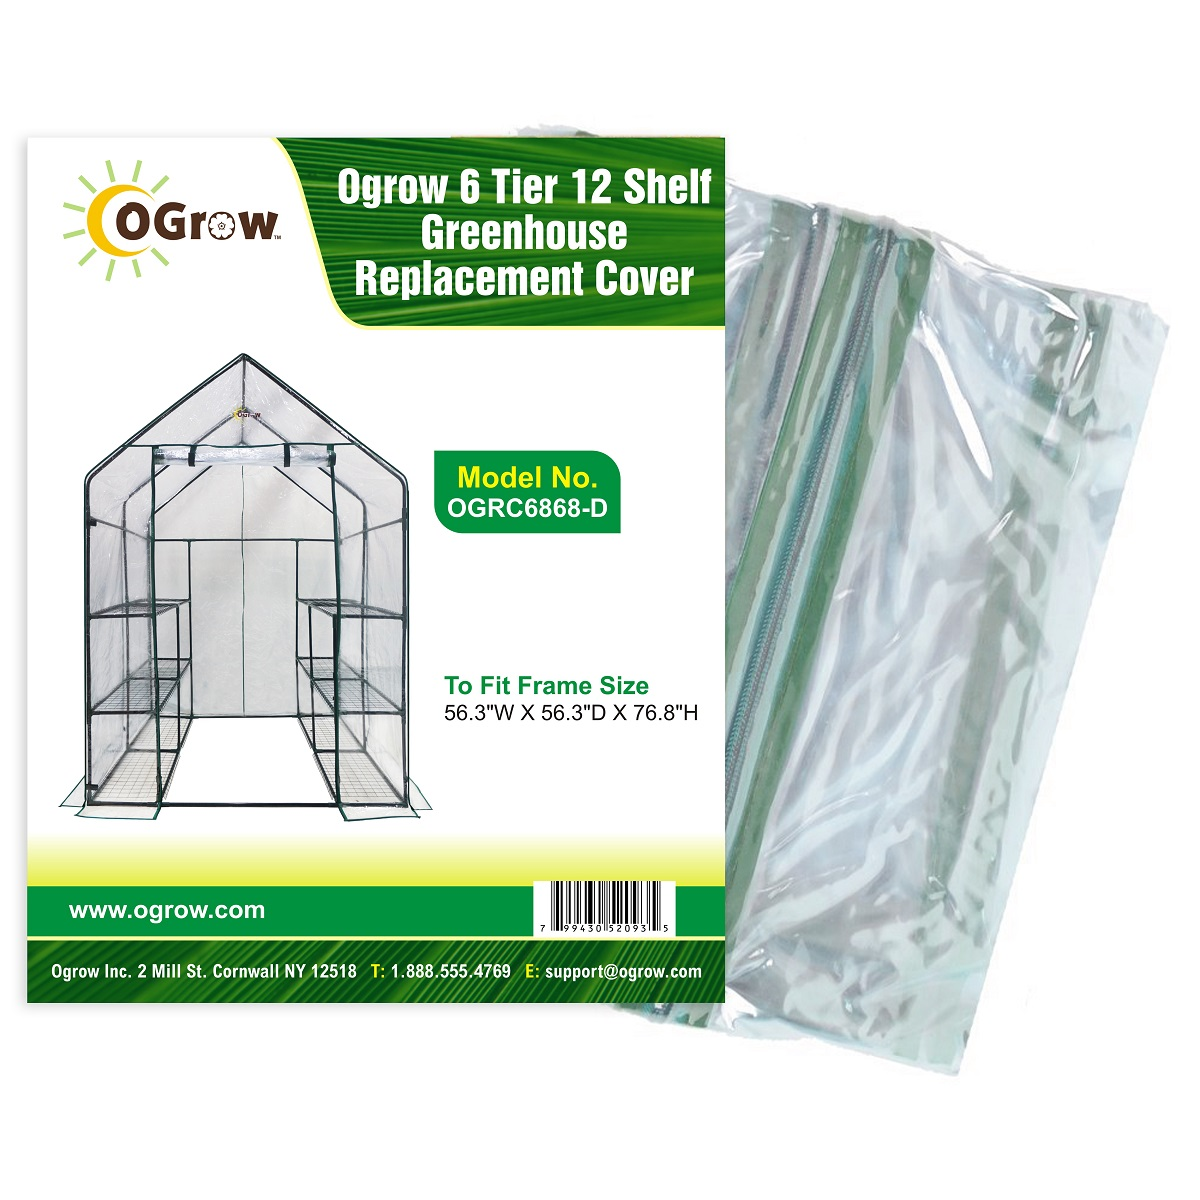 "6 Tier 12 Shelf Greenhouse Replacement Cover To Fit Frame Size 56.3""W X 56.3""D X 76.8""H by KSH Brands"